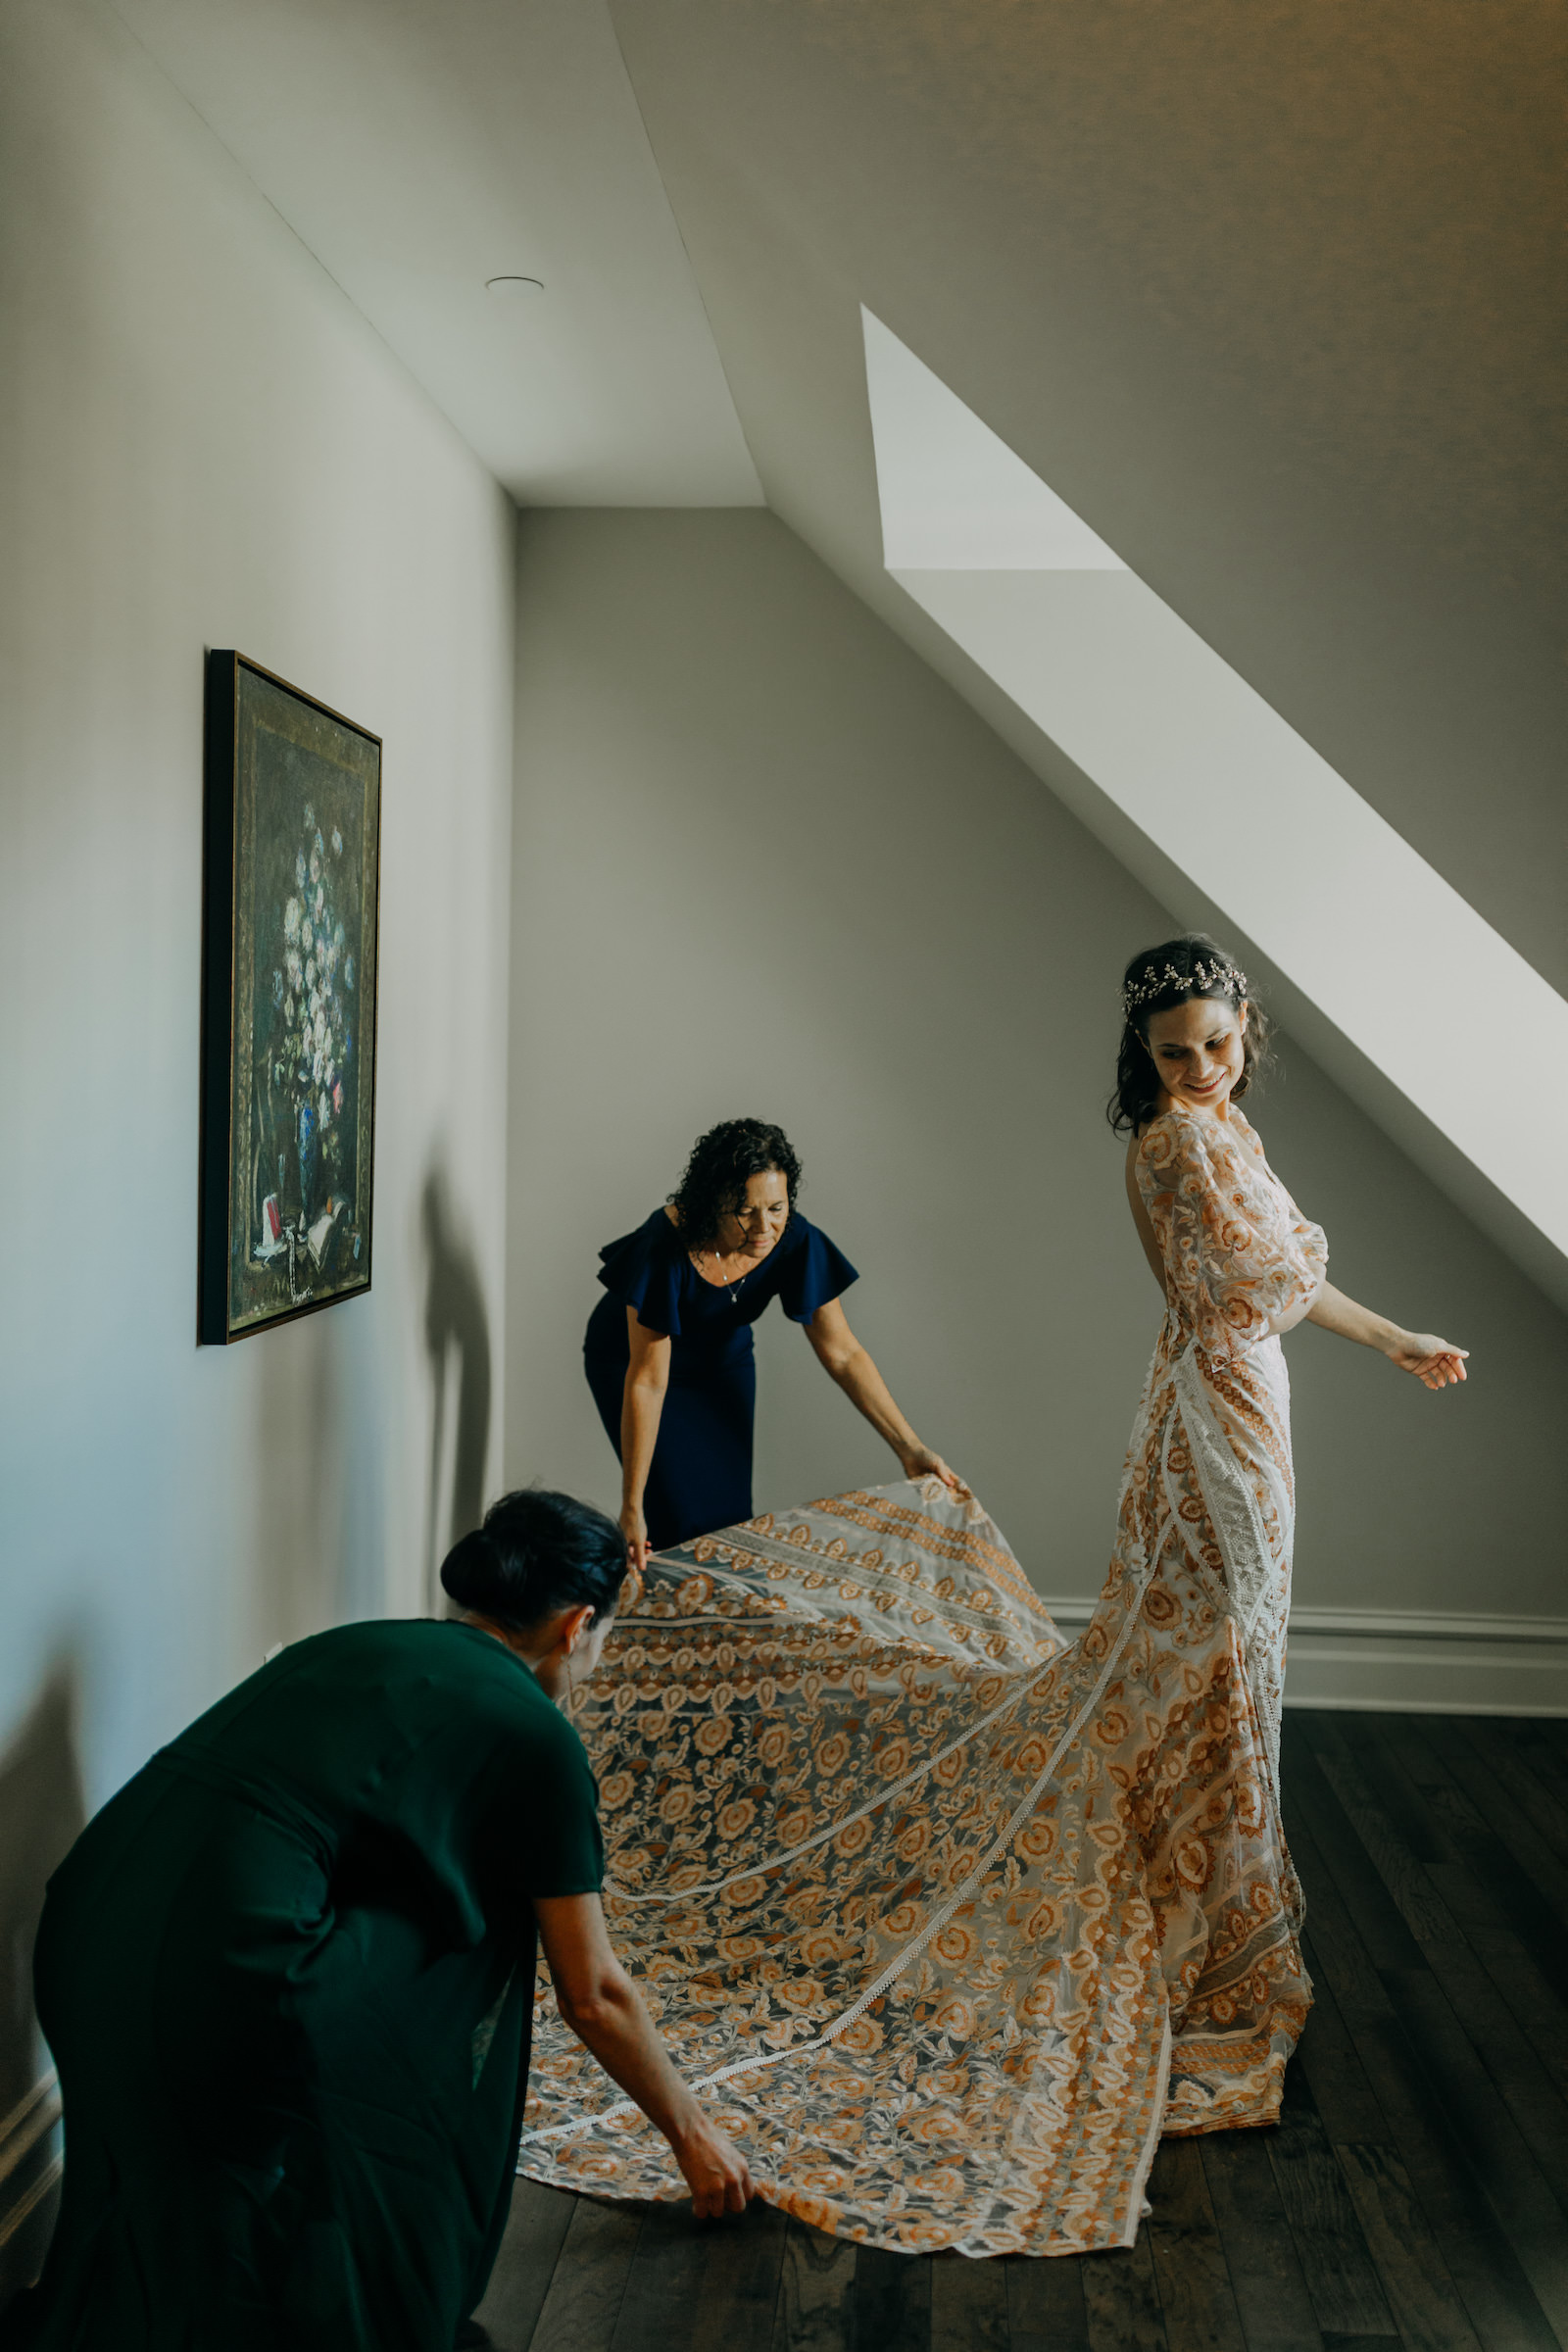 Indoor Bridal Portrait in Boho Wedding Dress   Gold Bronze Embroidered Overlay Wedding Dress Bridal Gown with Illusion Sleeves and Train   Amber McWhorter Photography